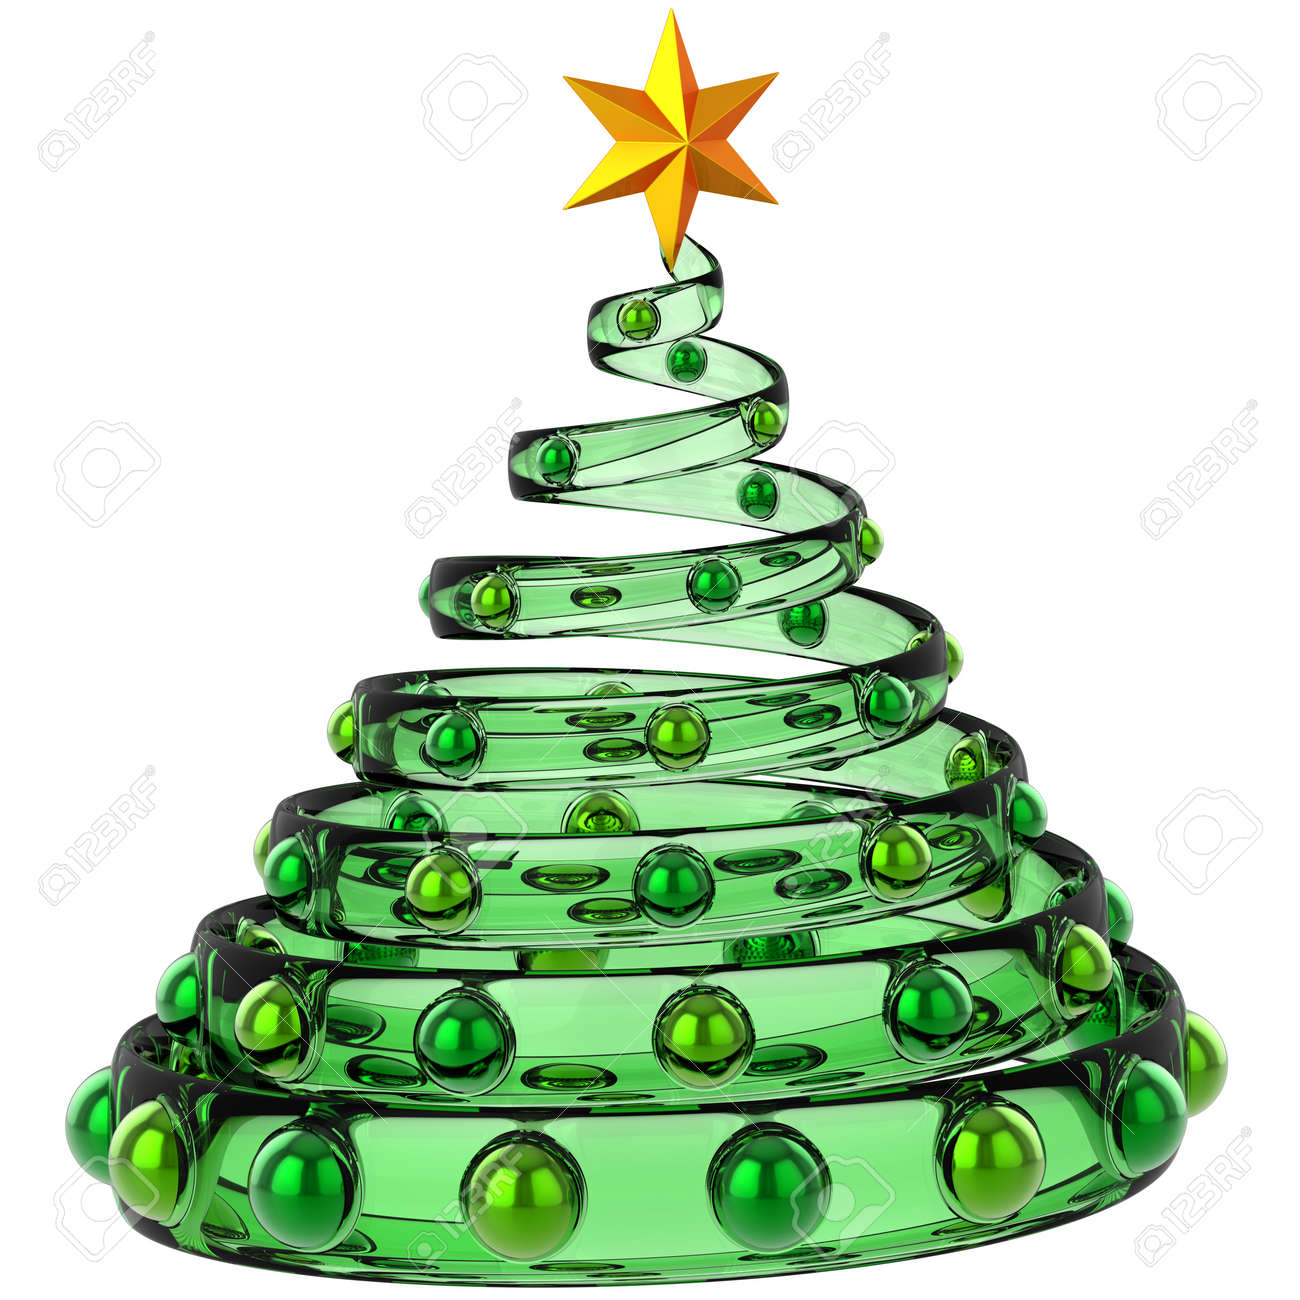 modern christmas tree made from green glass with metallic baubles and shiny yellow star stylized - Modern Christmas Tree